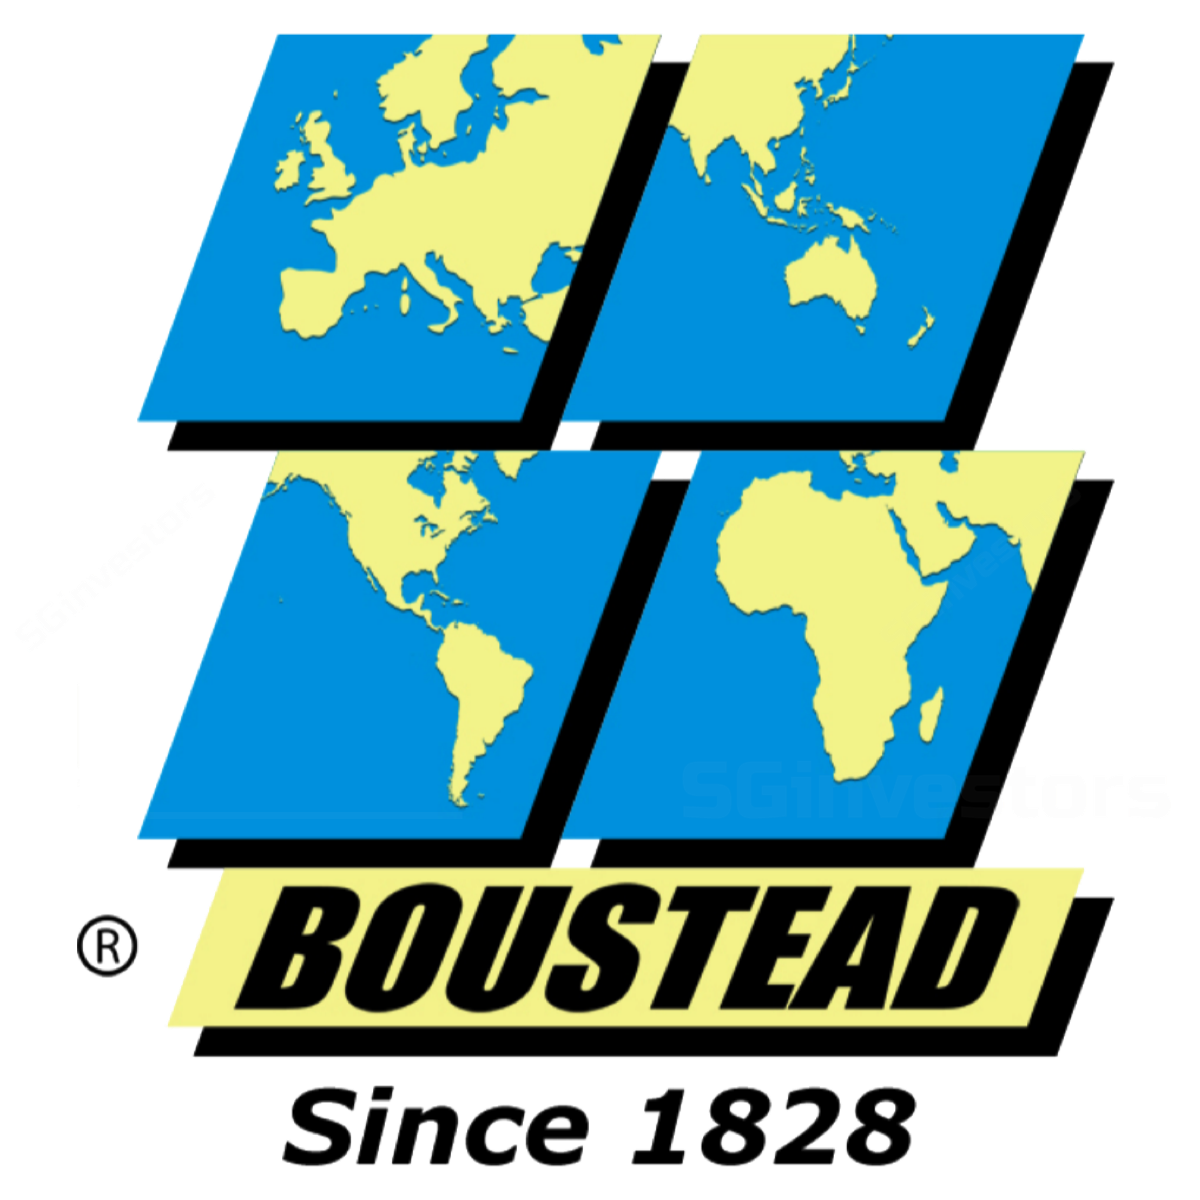 Boustead Singapore Limited.png